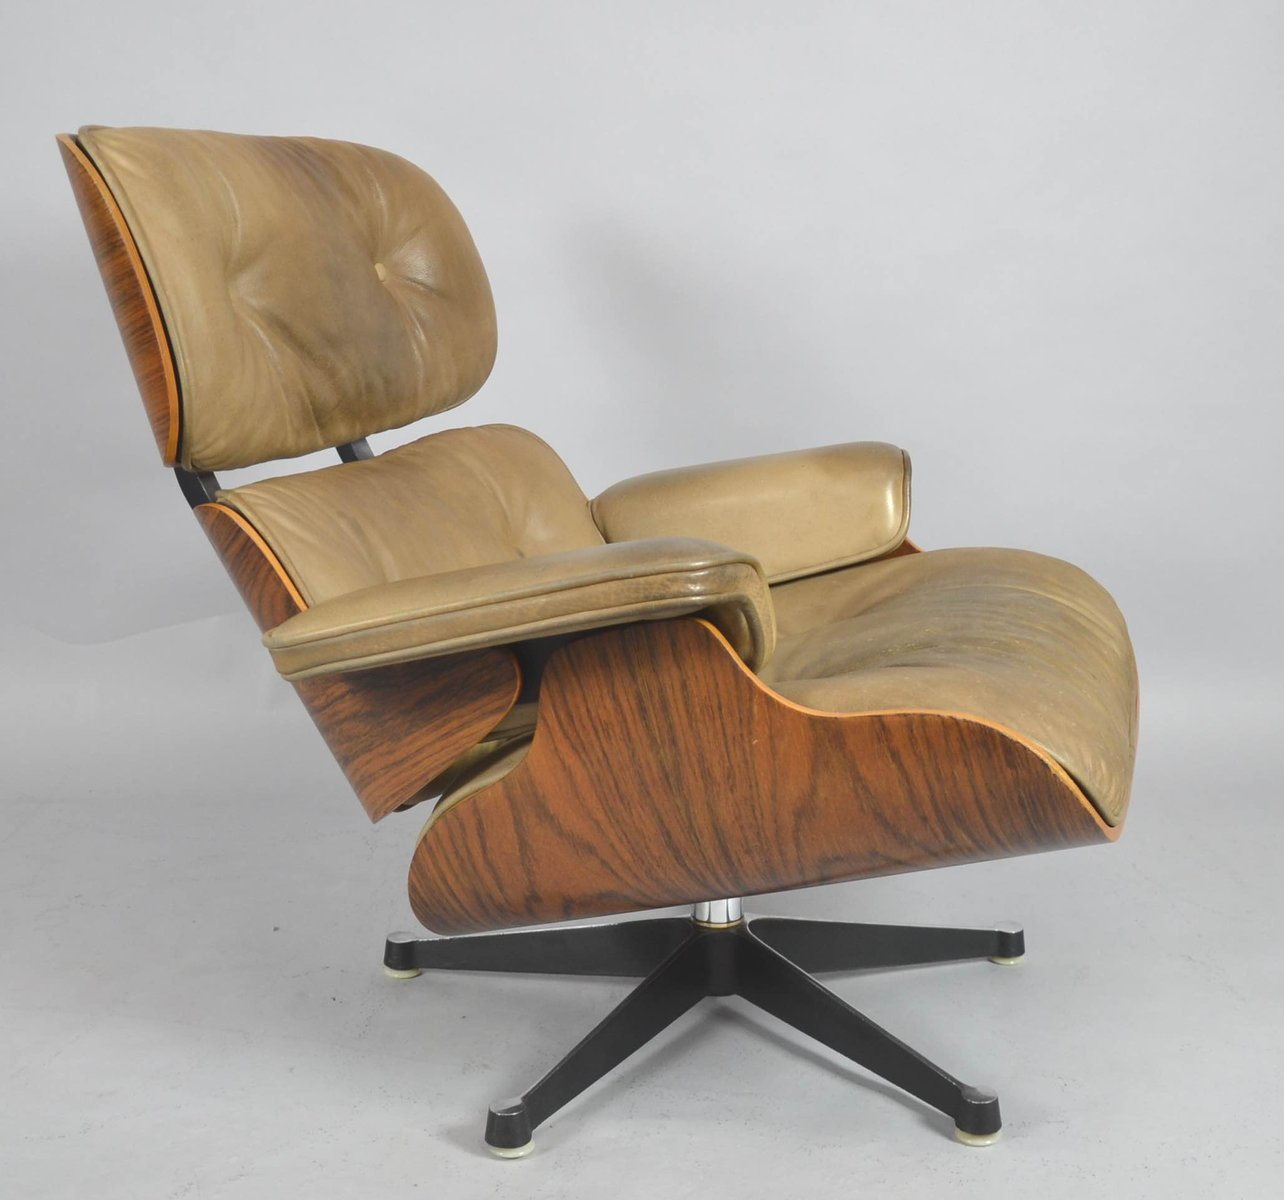 Mid Century Lounge Chair By Charles U0026 Ray Eames For Fehlbaum Contura / Vitra